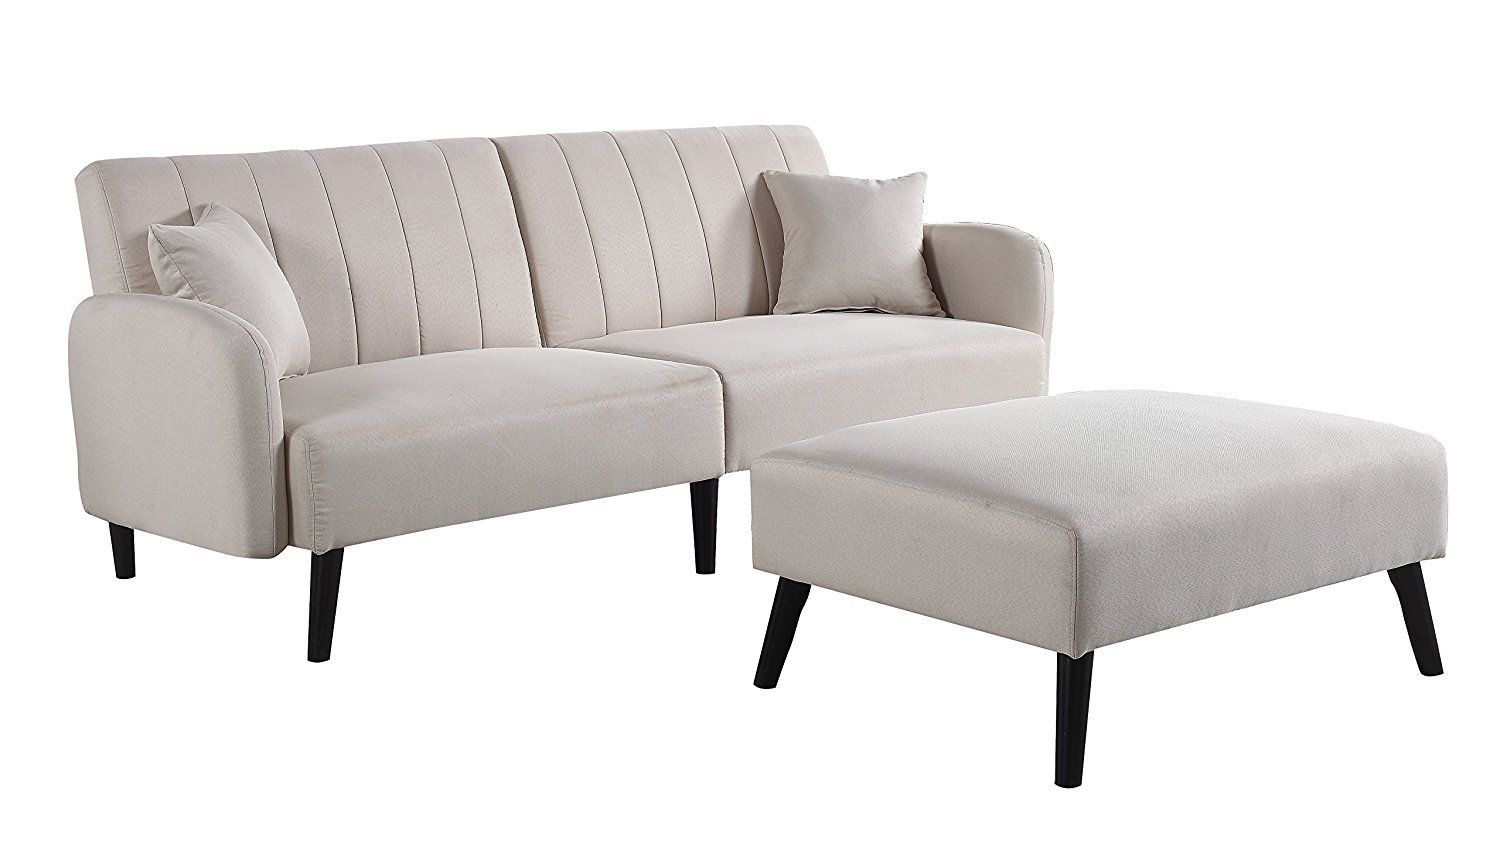 Details About Mid Century Modern Beige Fabric Futon Sofa Bed Living Room Sleeper Couch